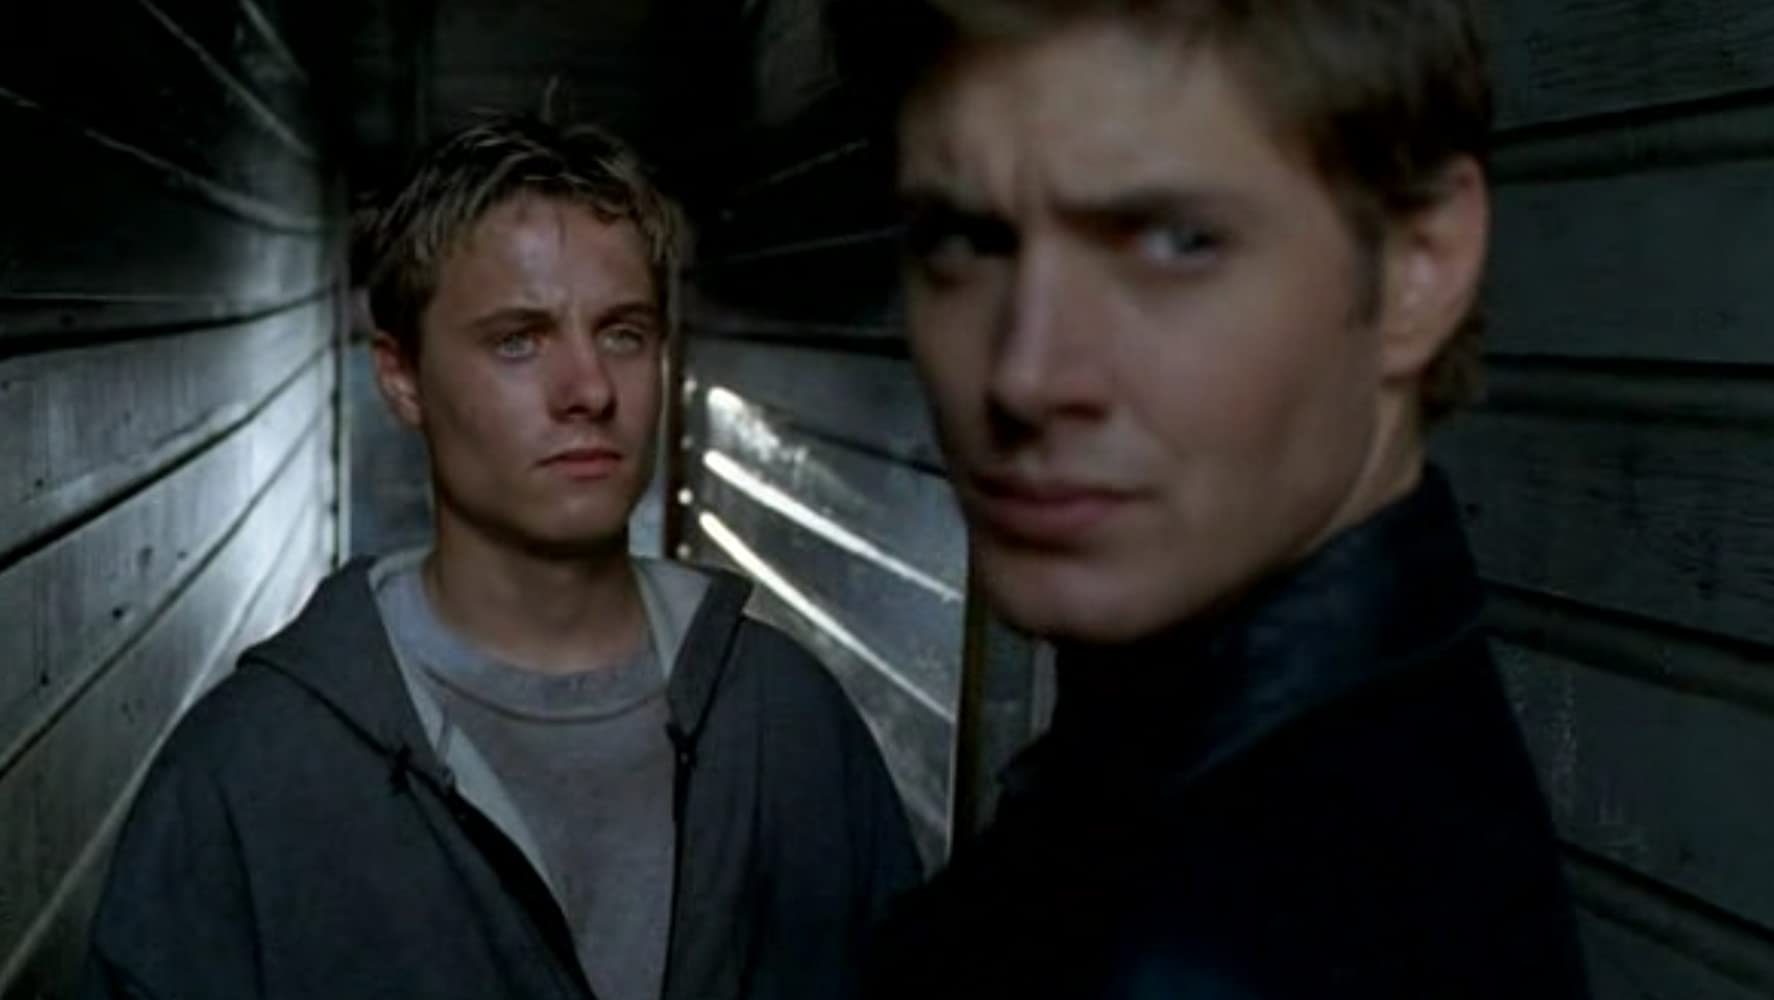 Jensen Ackles in Dark Angel (2000)